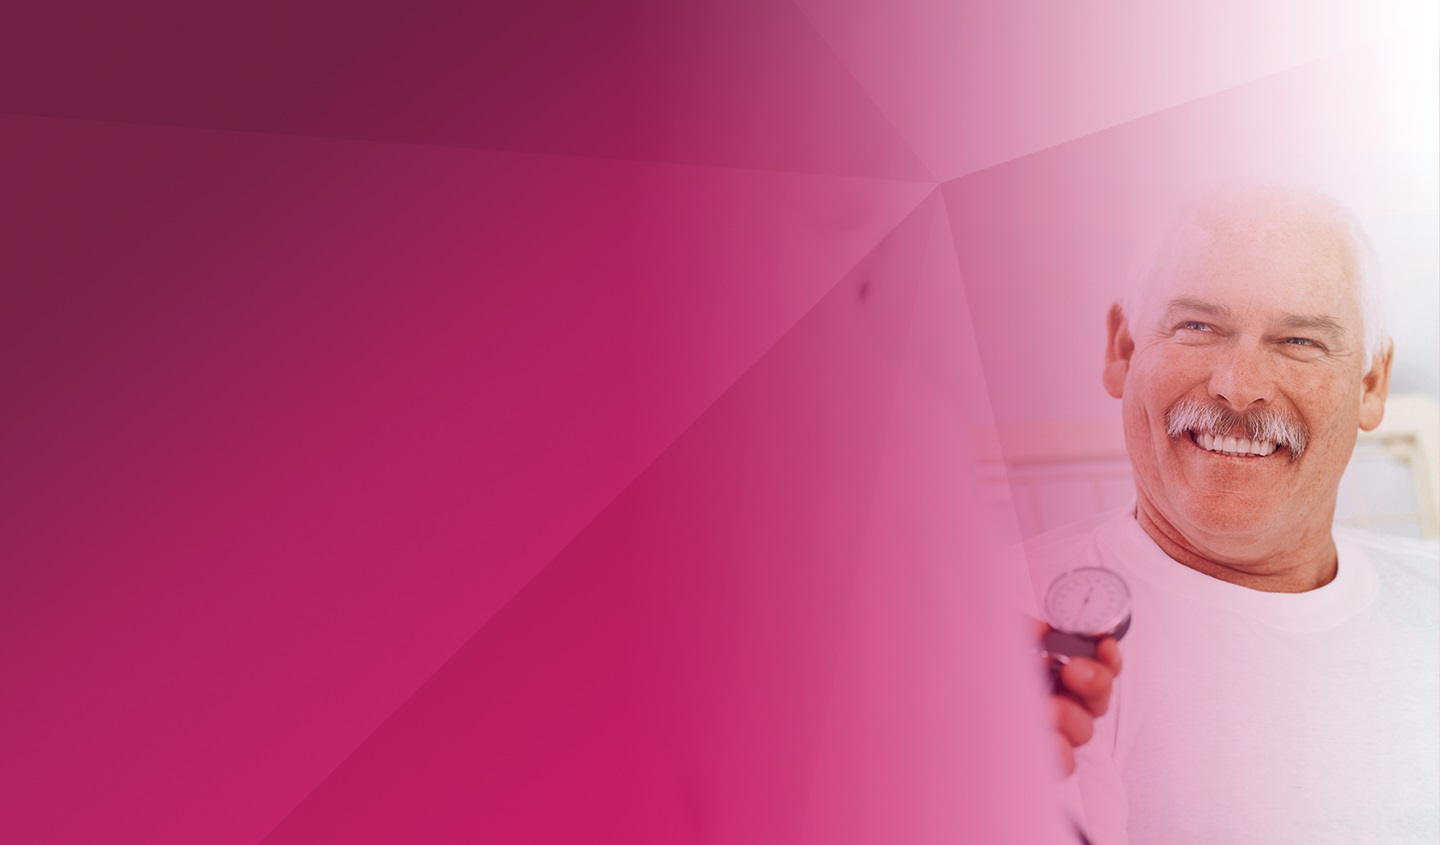 doctor smiling background pink